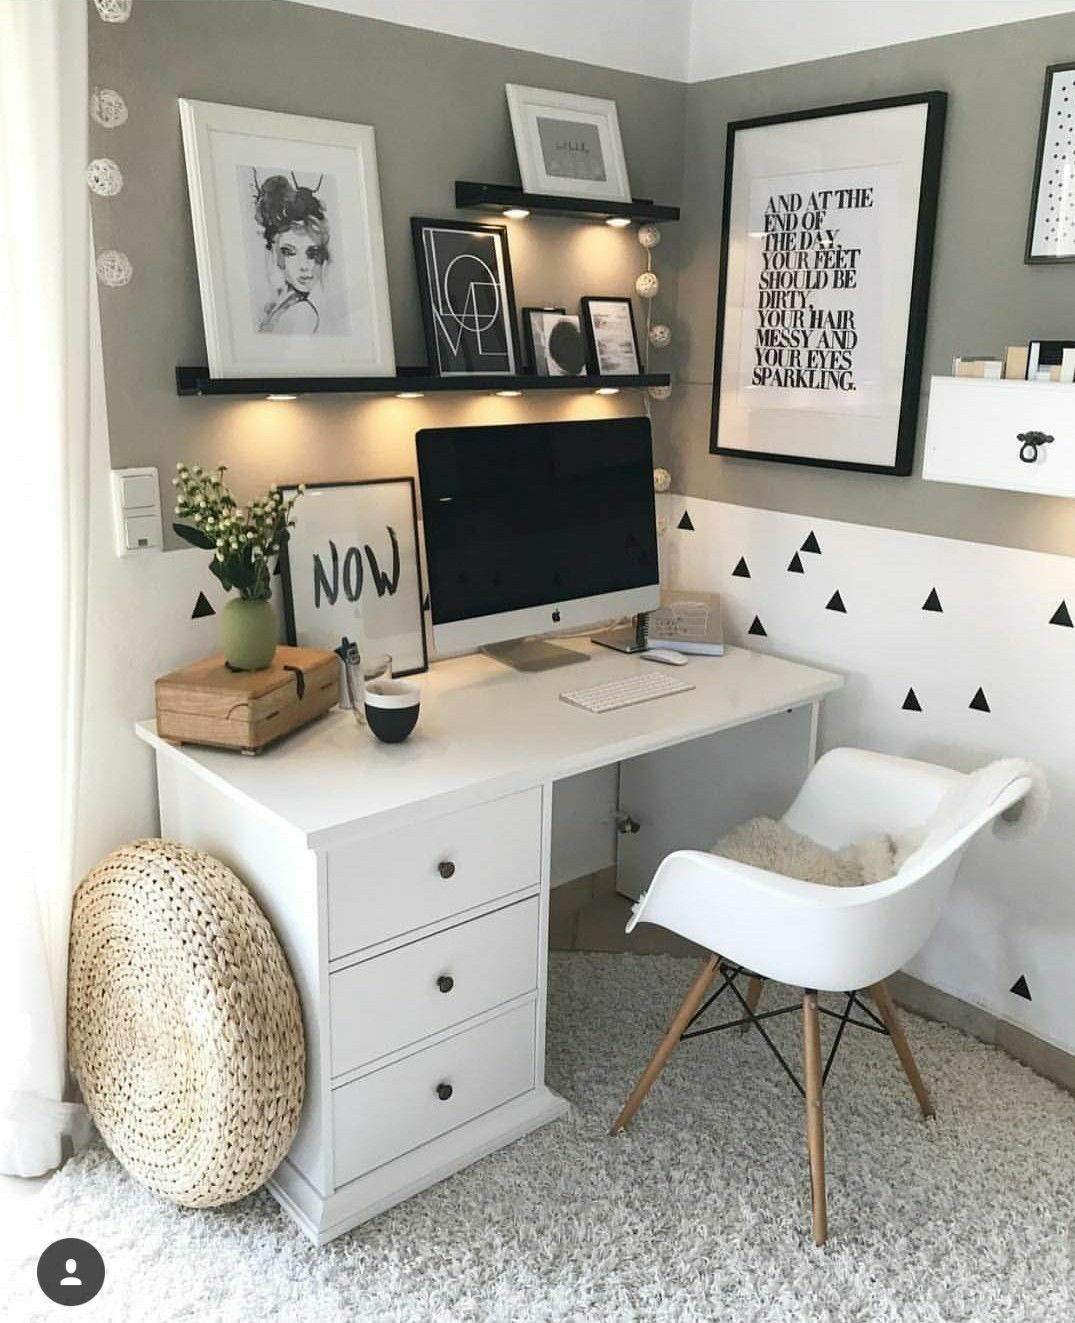 Bedroom Office: #businesswoman #entrepreneurlife #homeoffice #officegoals